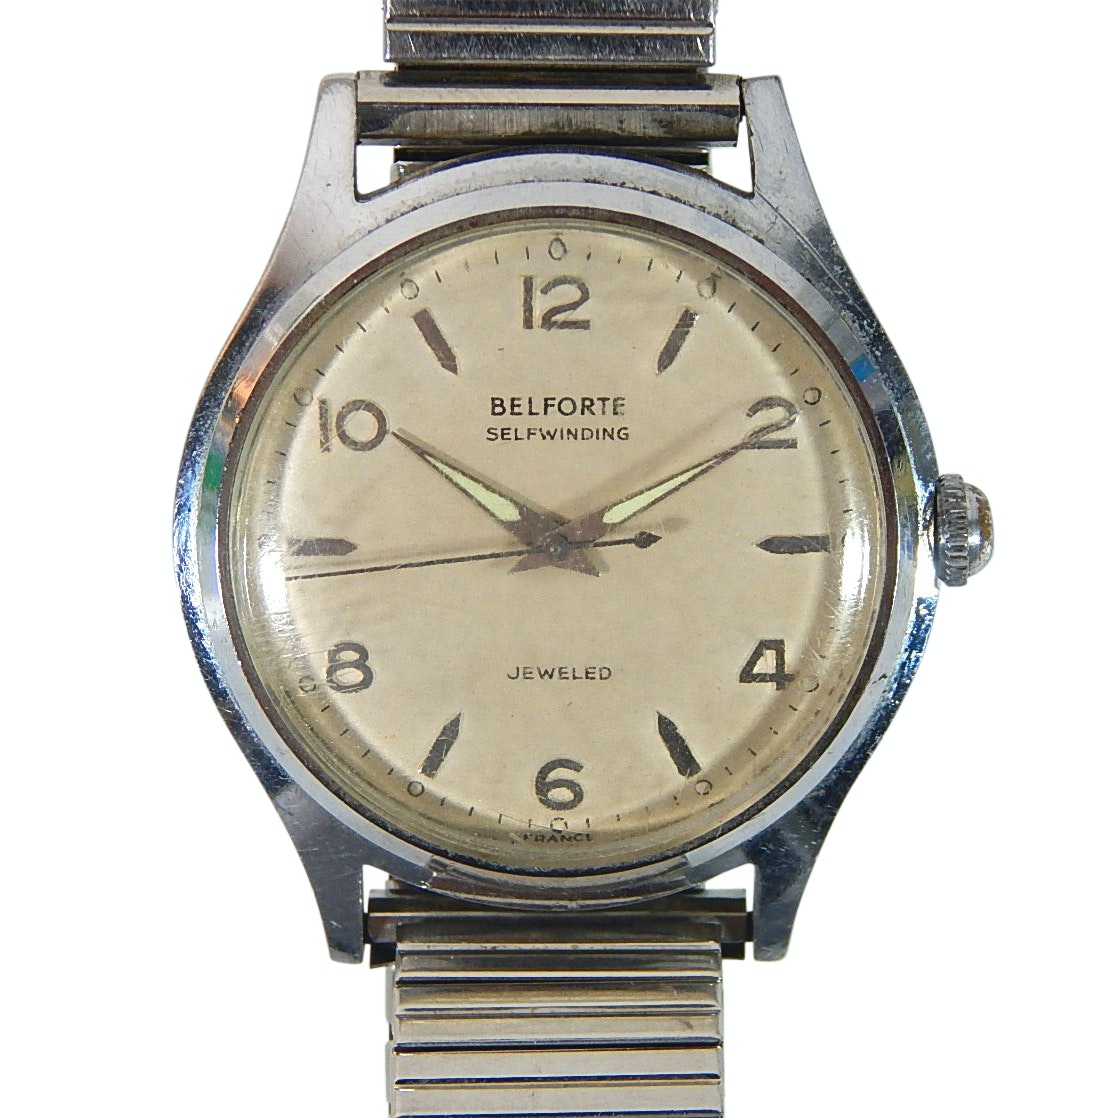 Vintage Belforte Self Winding France Silver-Tone Wristwatch